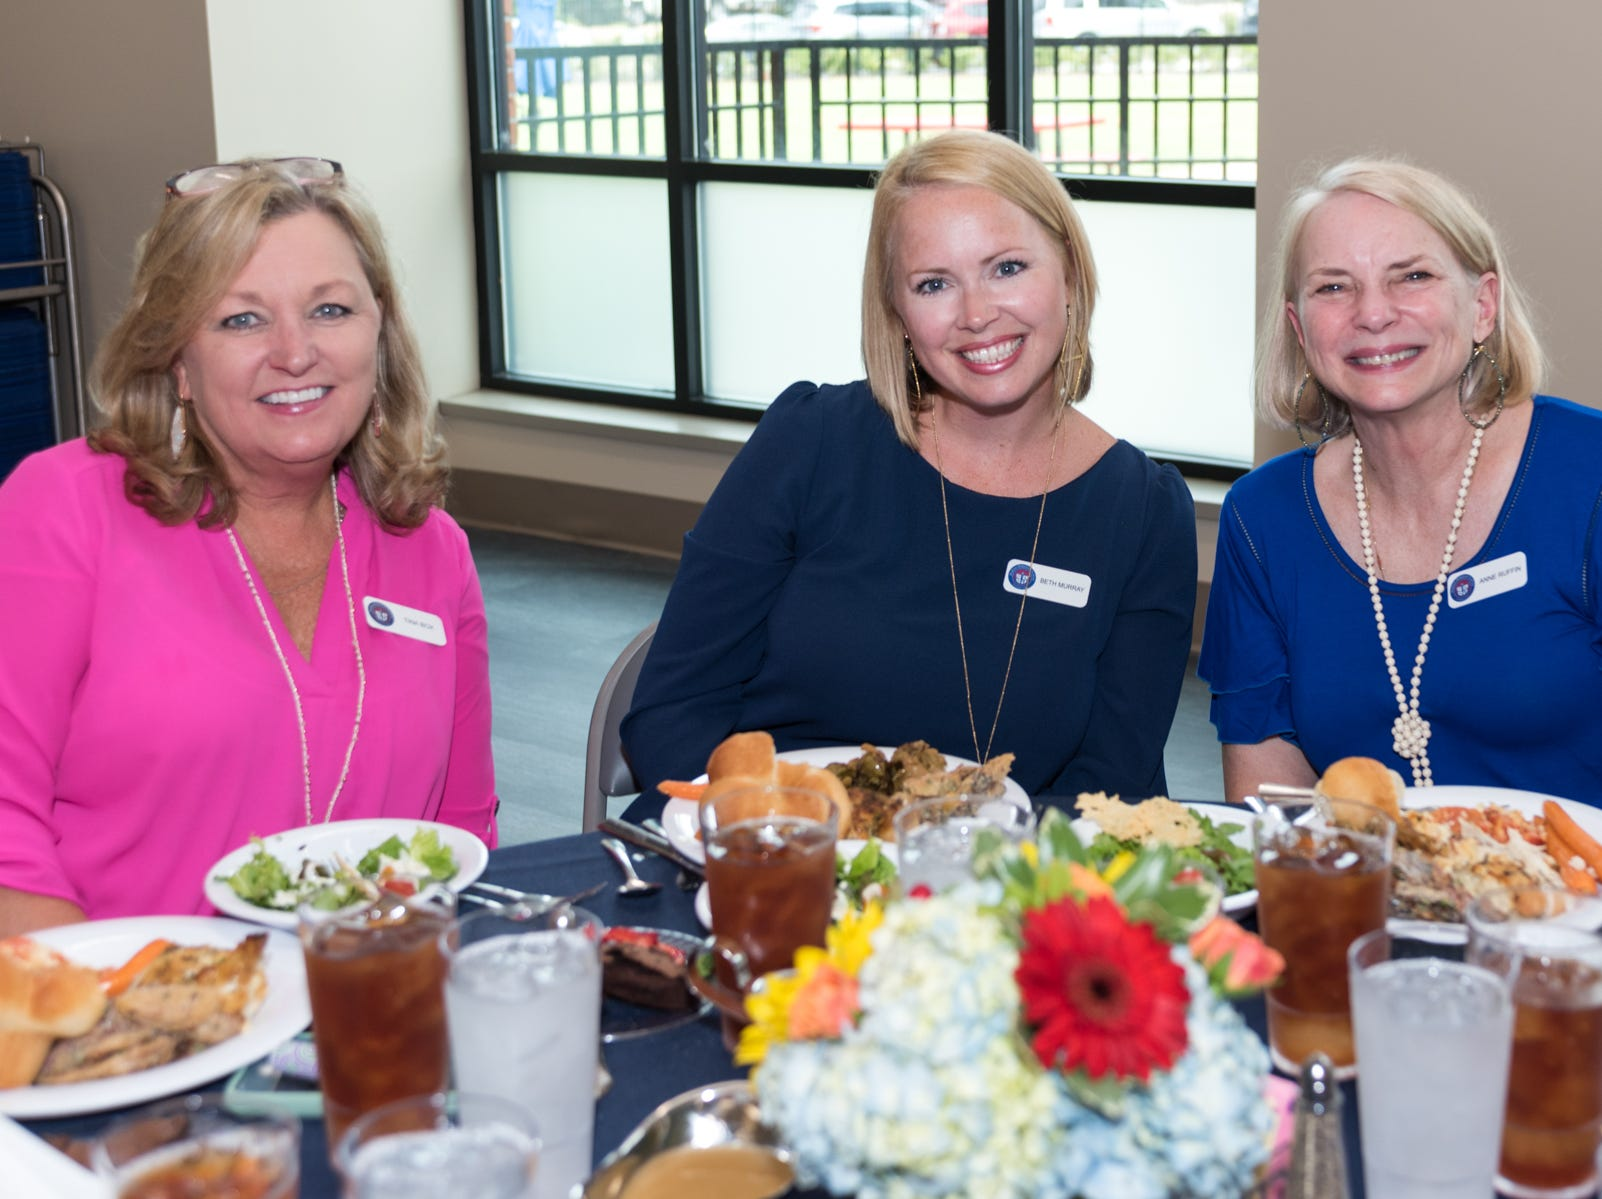 Staff members, from left, Tina Box and Beth Murray and faculty member Ann Ruffin share their meal together. Murray is a MRA alumna and Ruffin has a grandchild at the school.